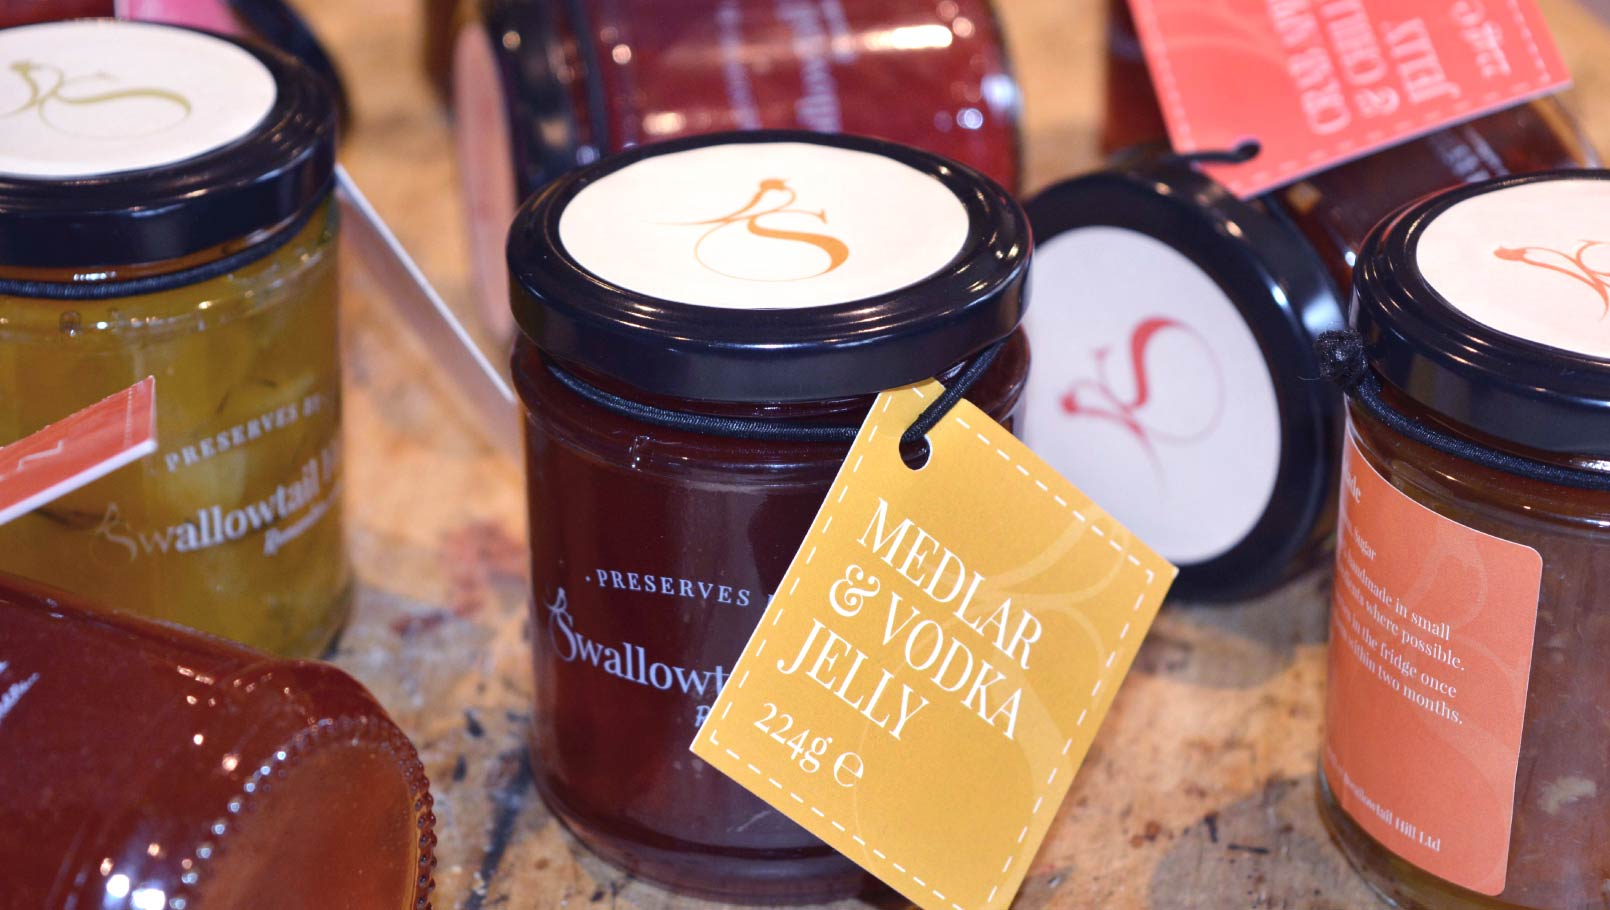 Swallowtail Hill Preserves branding and label design and lids.